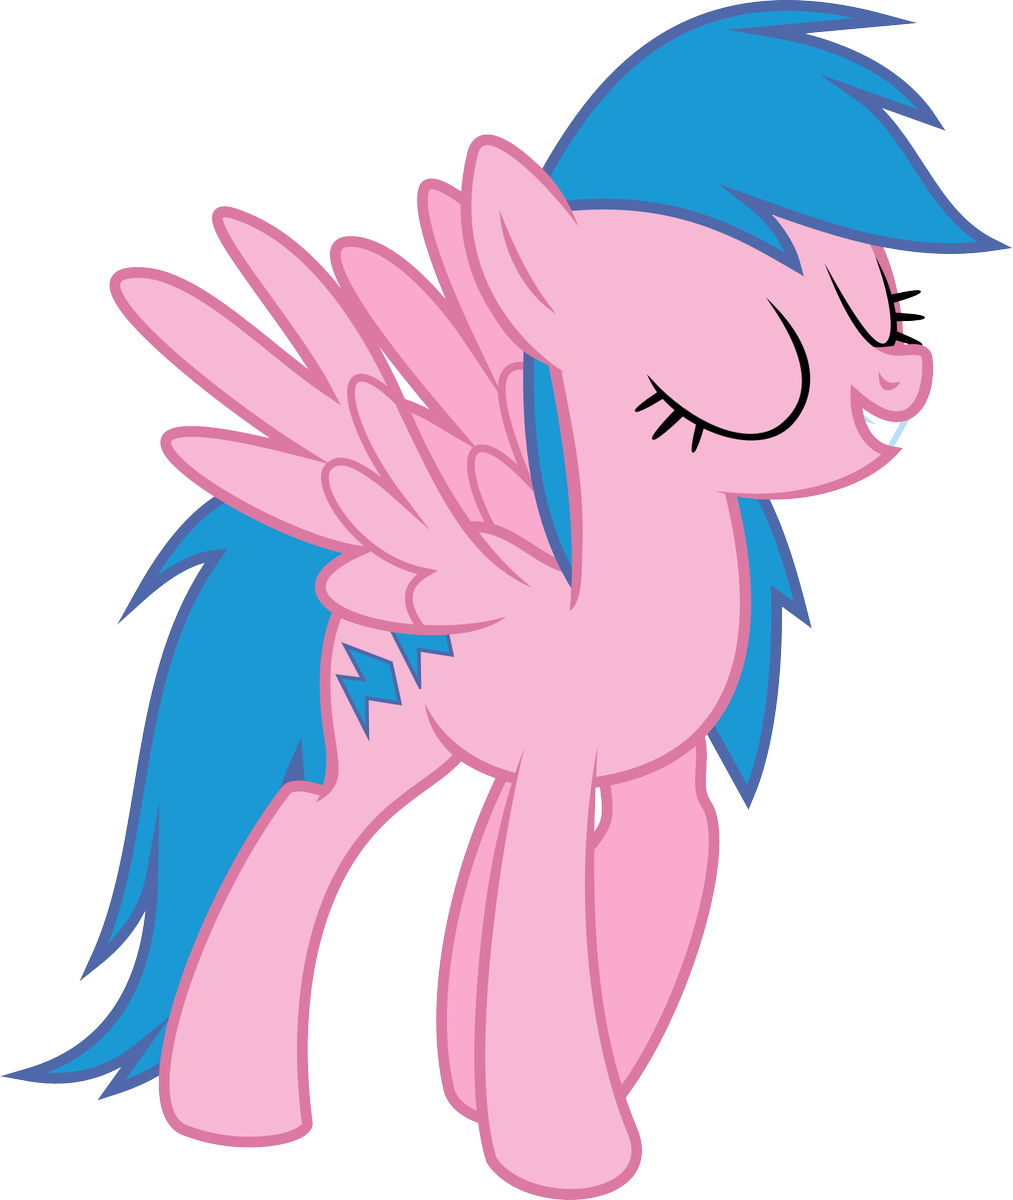 Firefly clipart fire fly. The mlp crew on